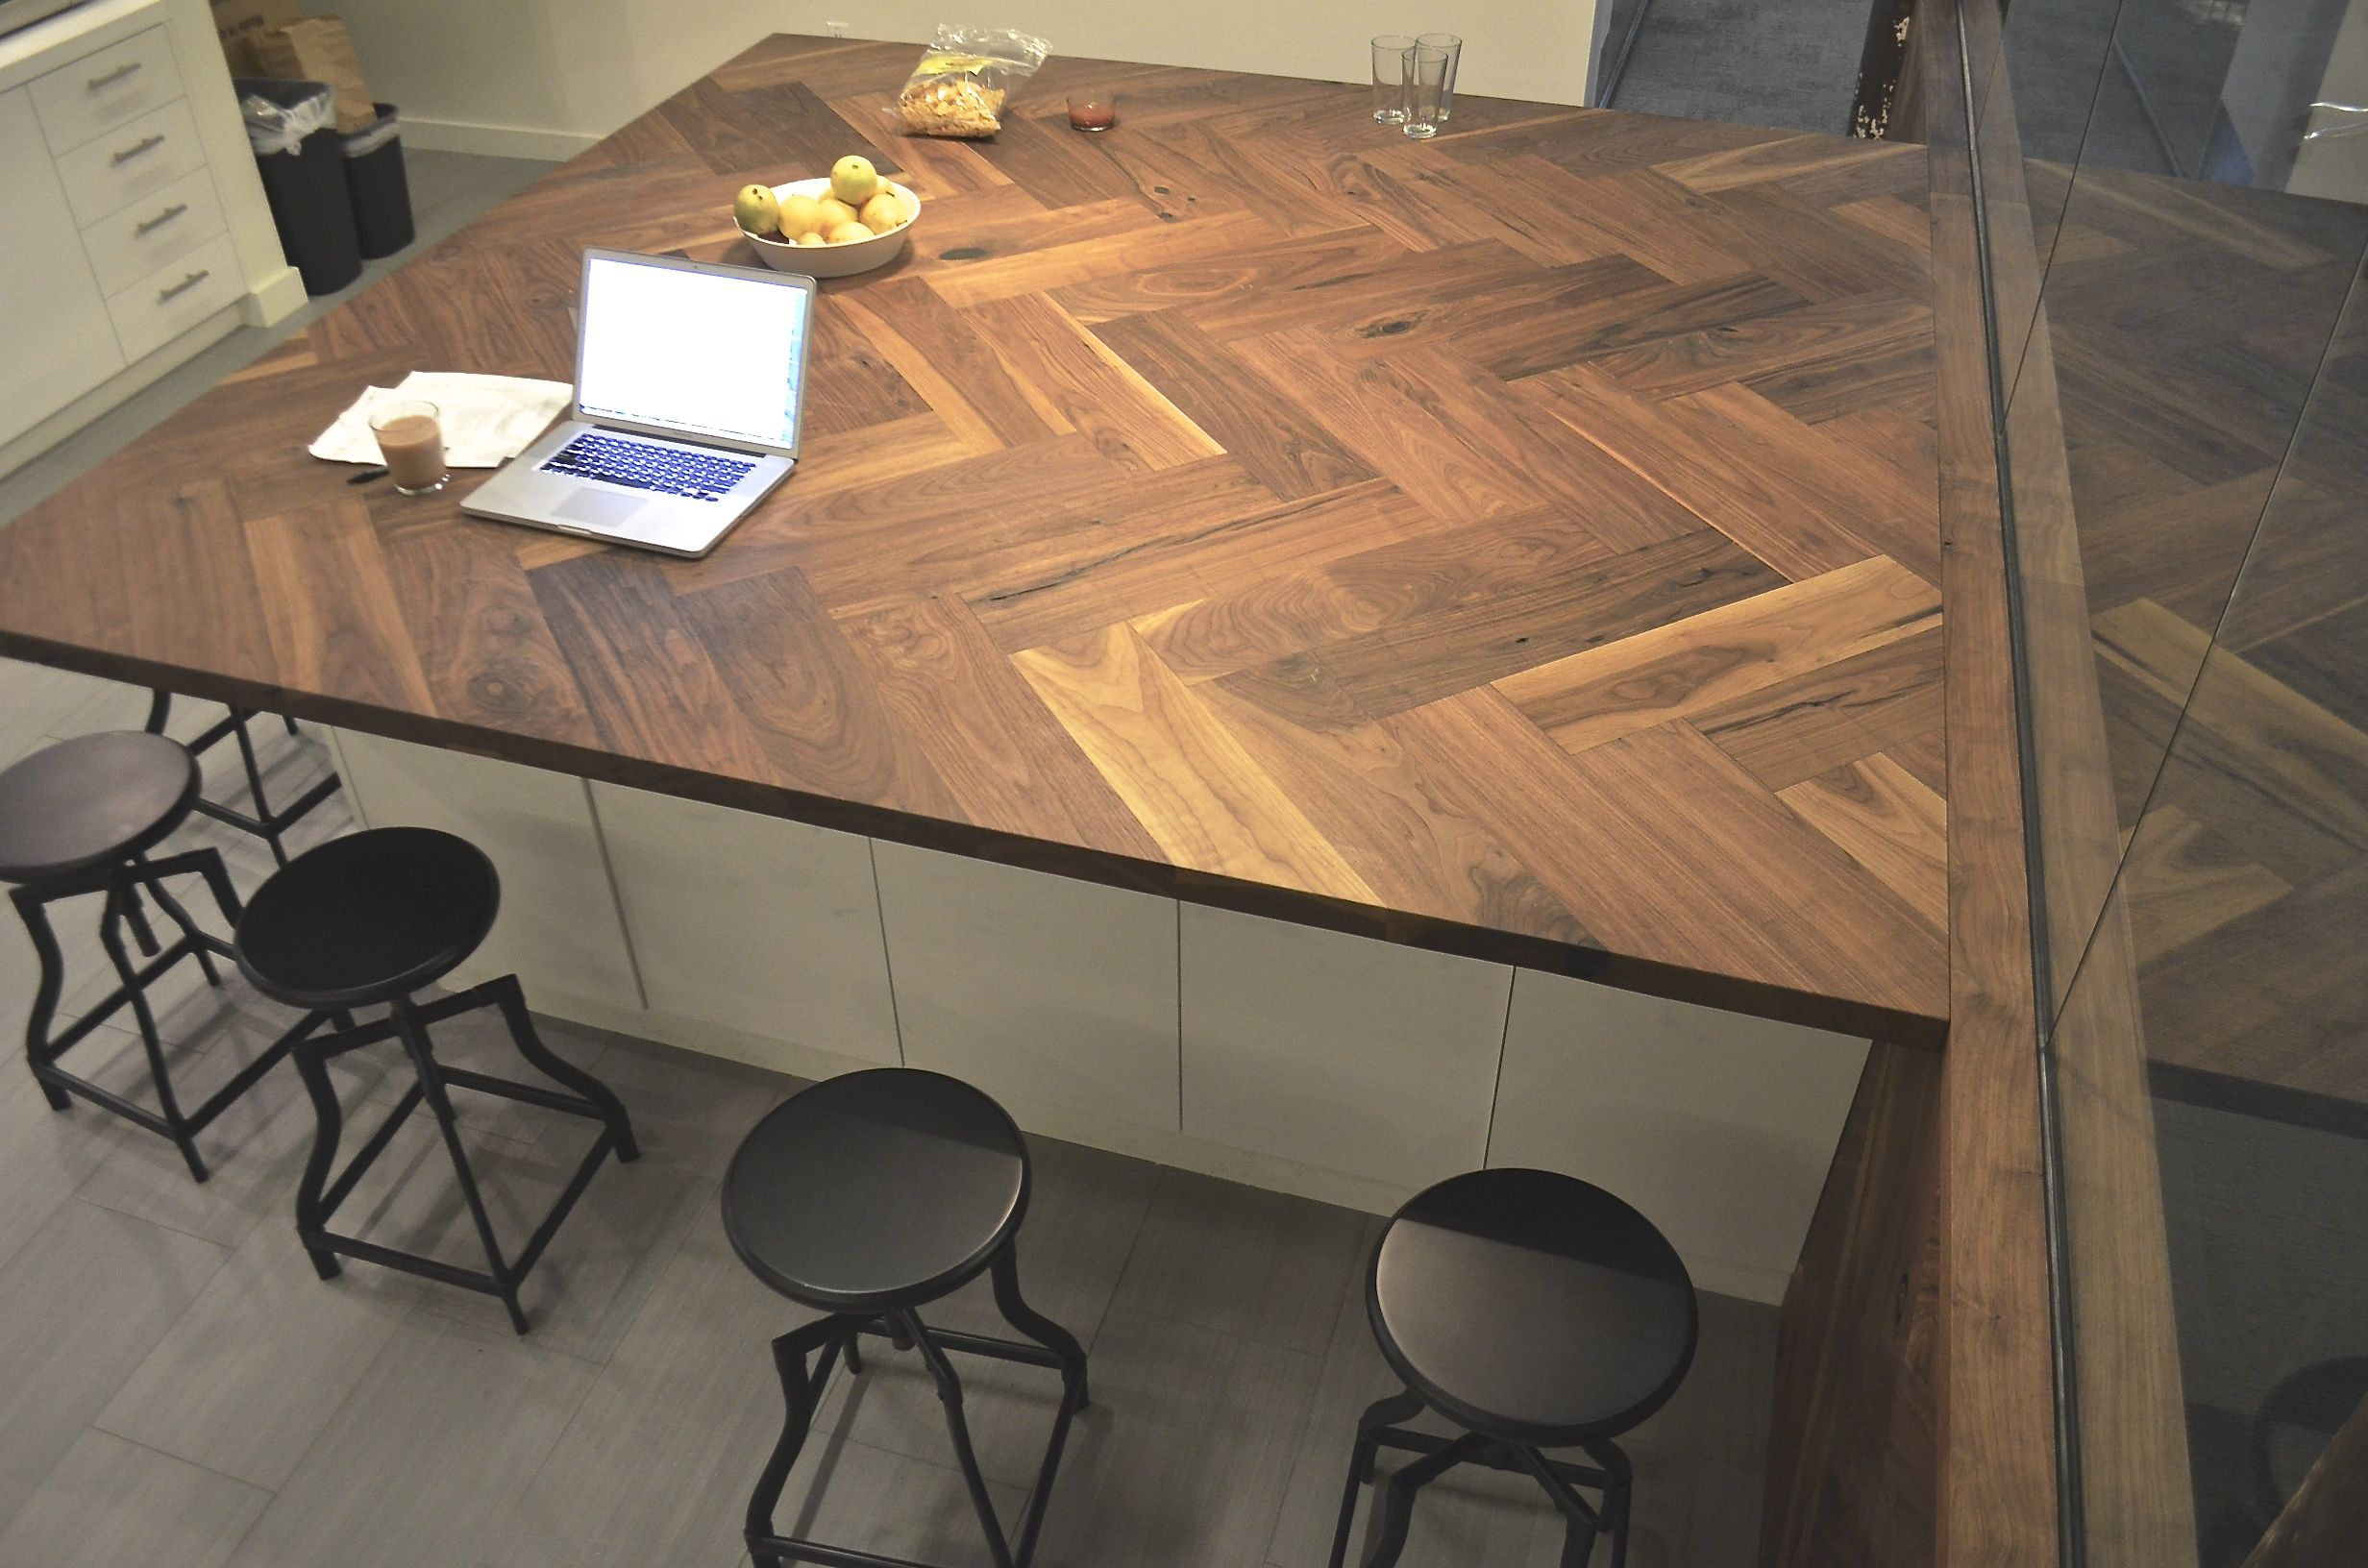 Walnut Herringbone Countertop Amp Low Wall Black Rabbit